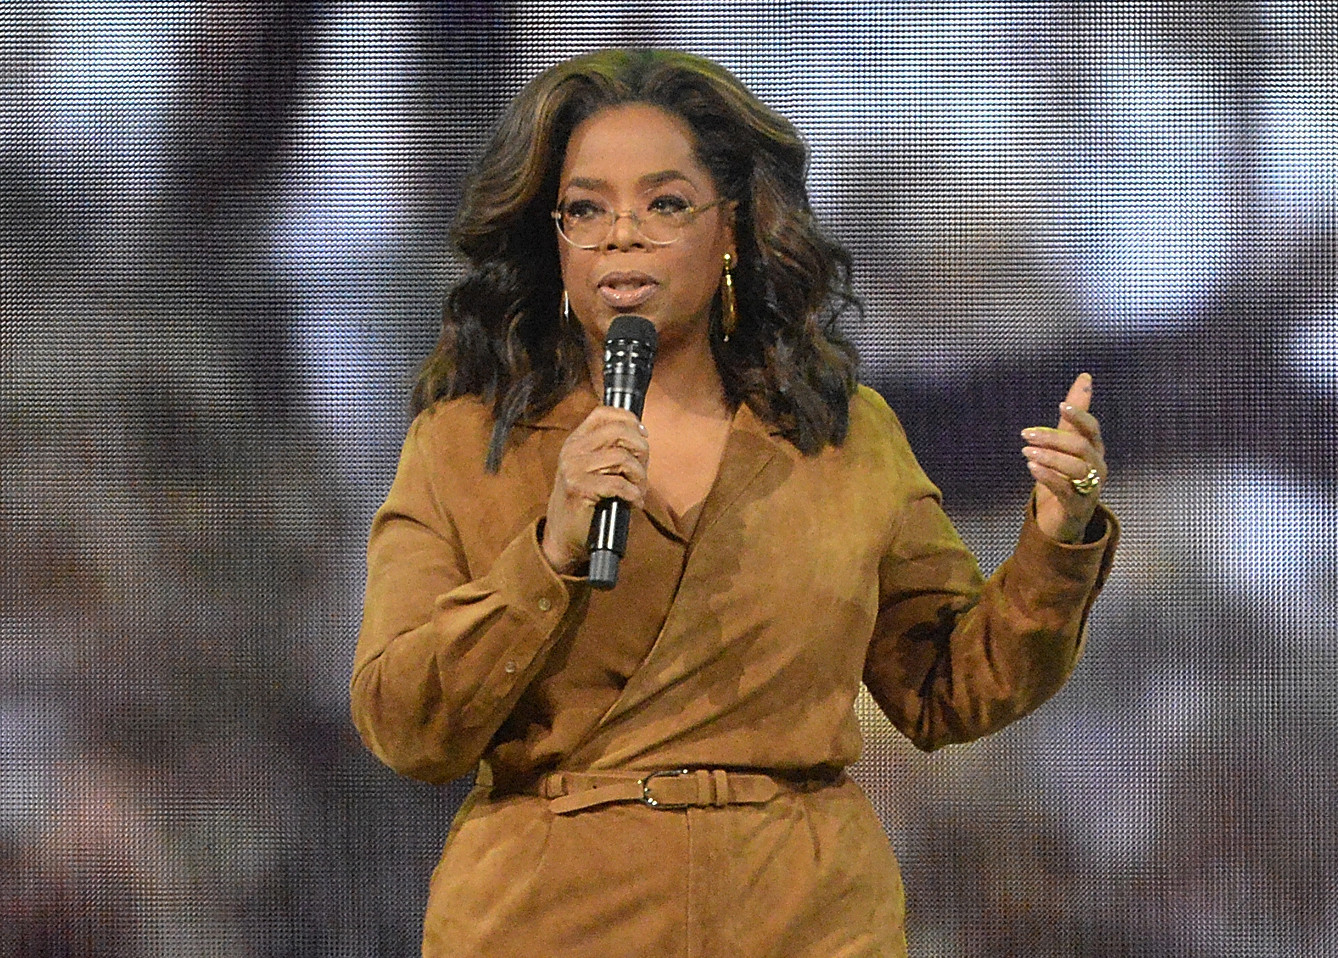 Oprah Winfrey donates $10 million to support those facing food insecurity due to coronavirus